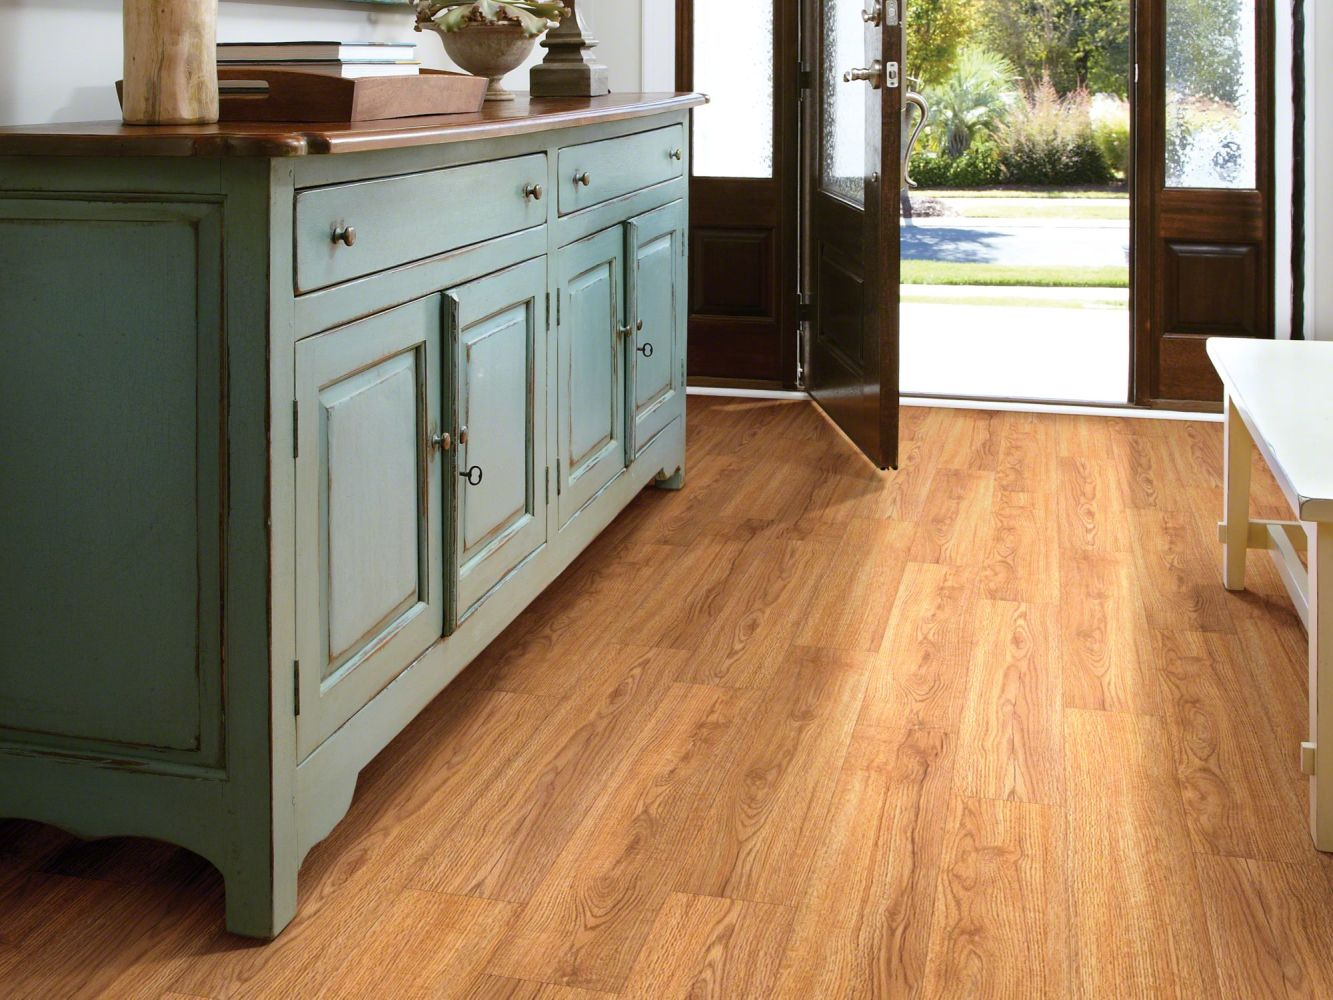 Shaw Floors Vinyl Residential Columbia 12 Peak 00226_0369V